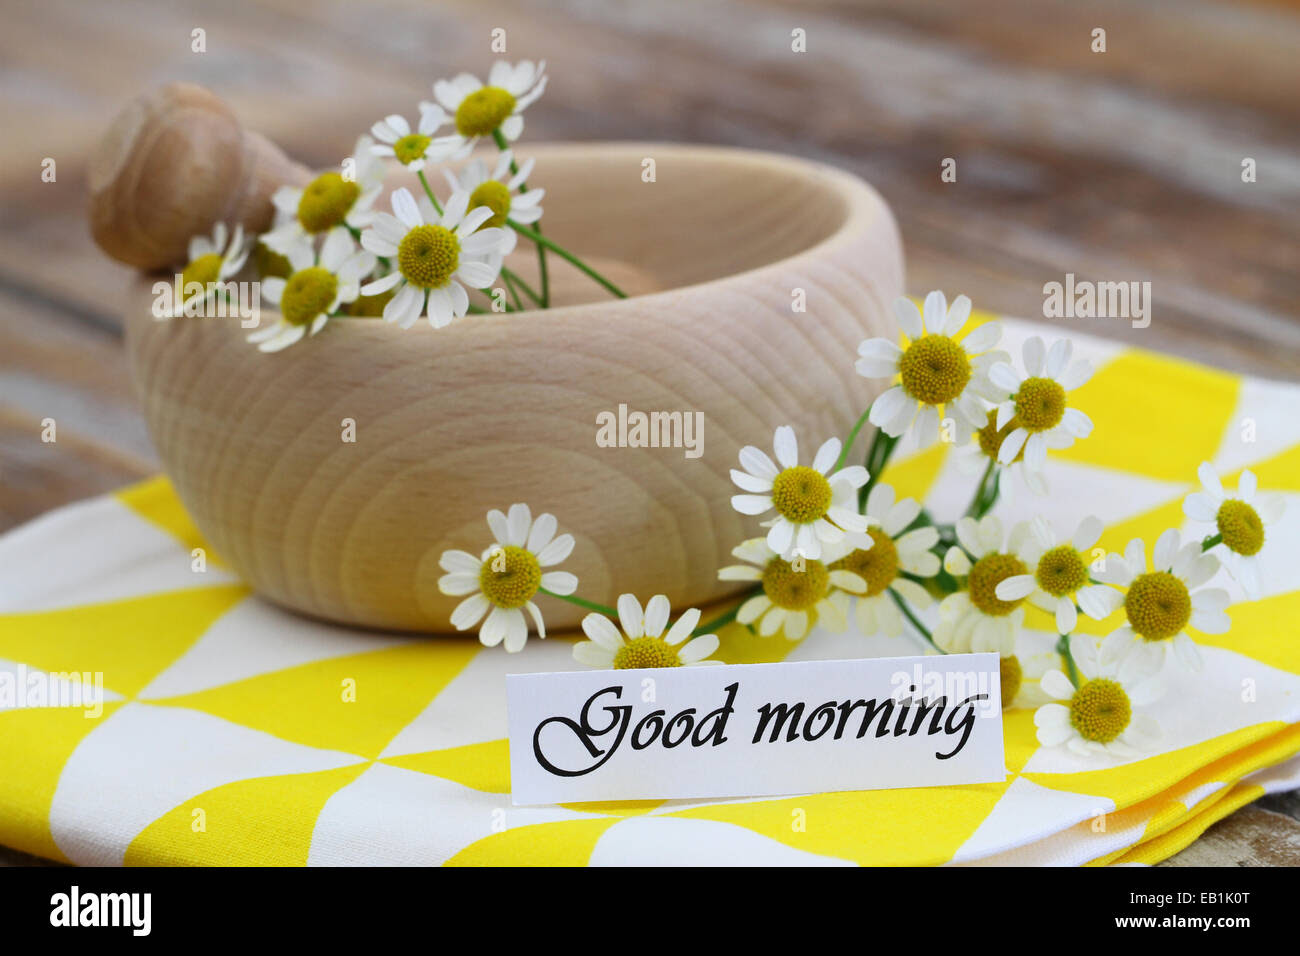 New Good Morning Fresh Flowers Images Top Collection Of Different